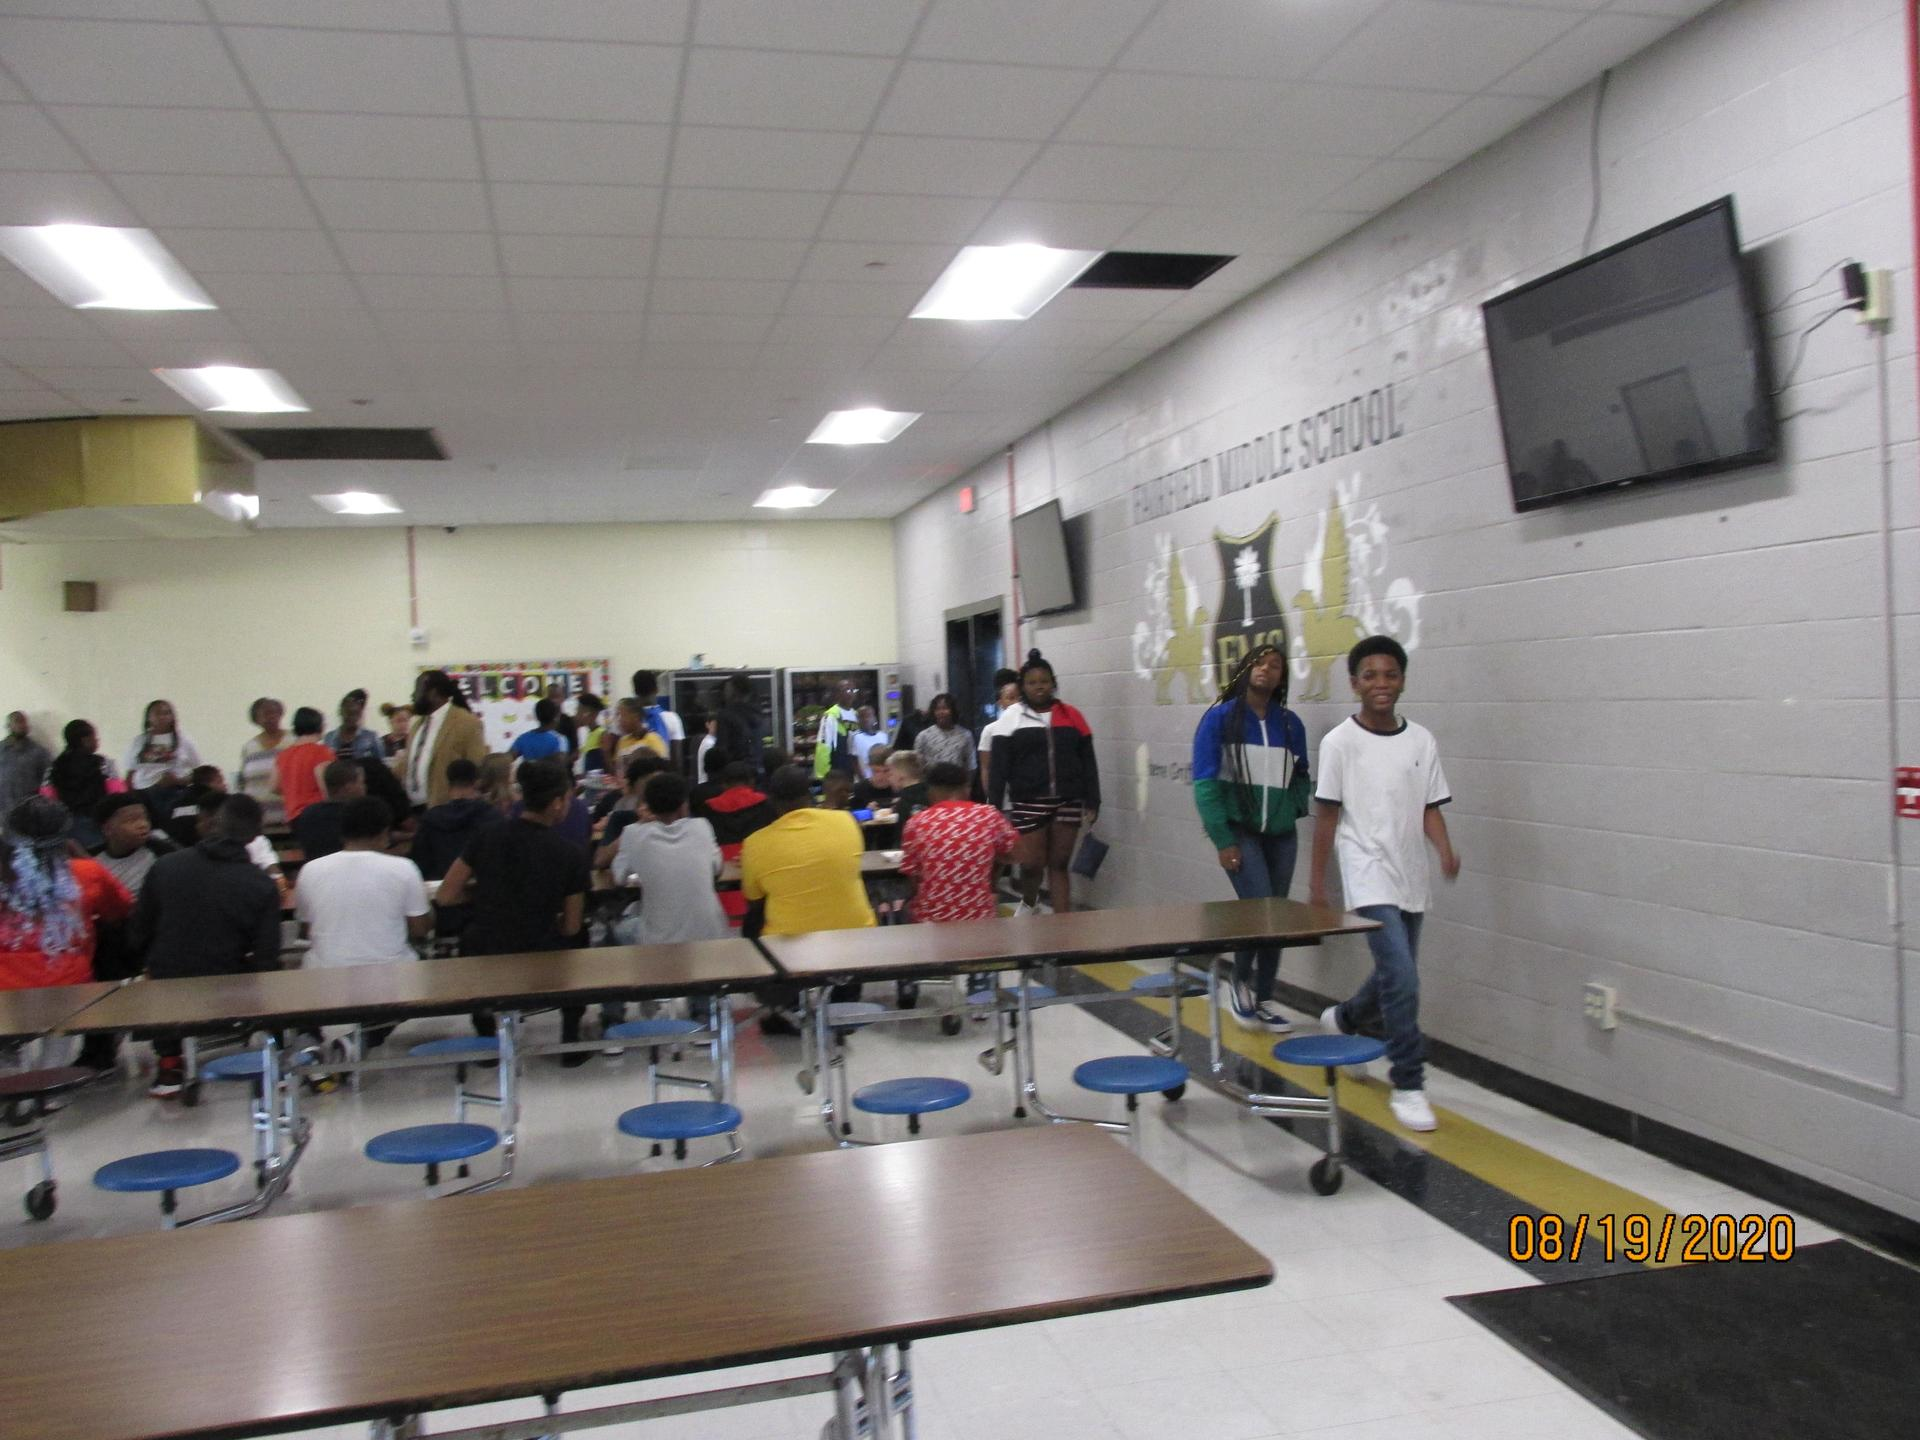 Students sitting at tables in the cafe